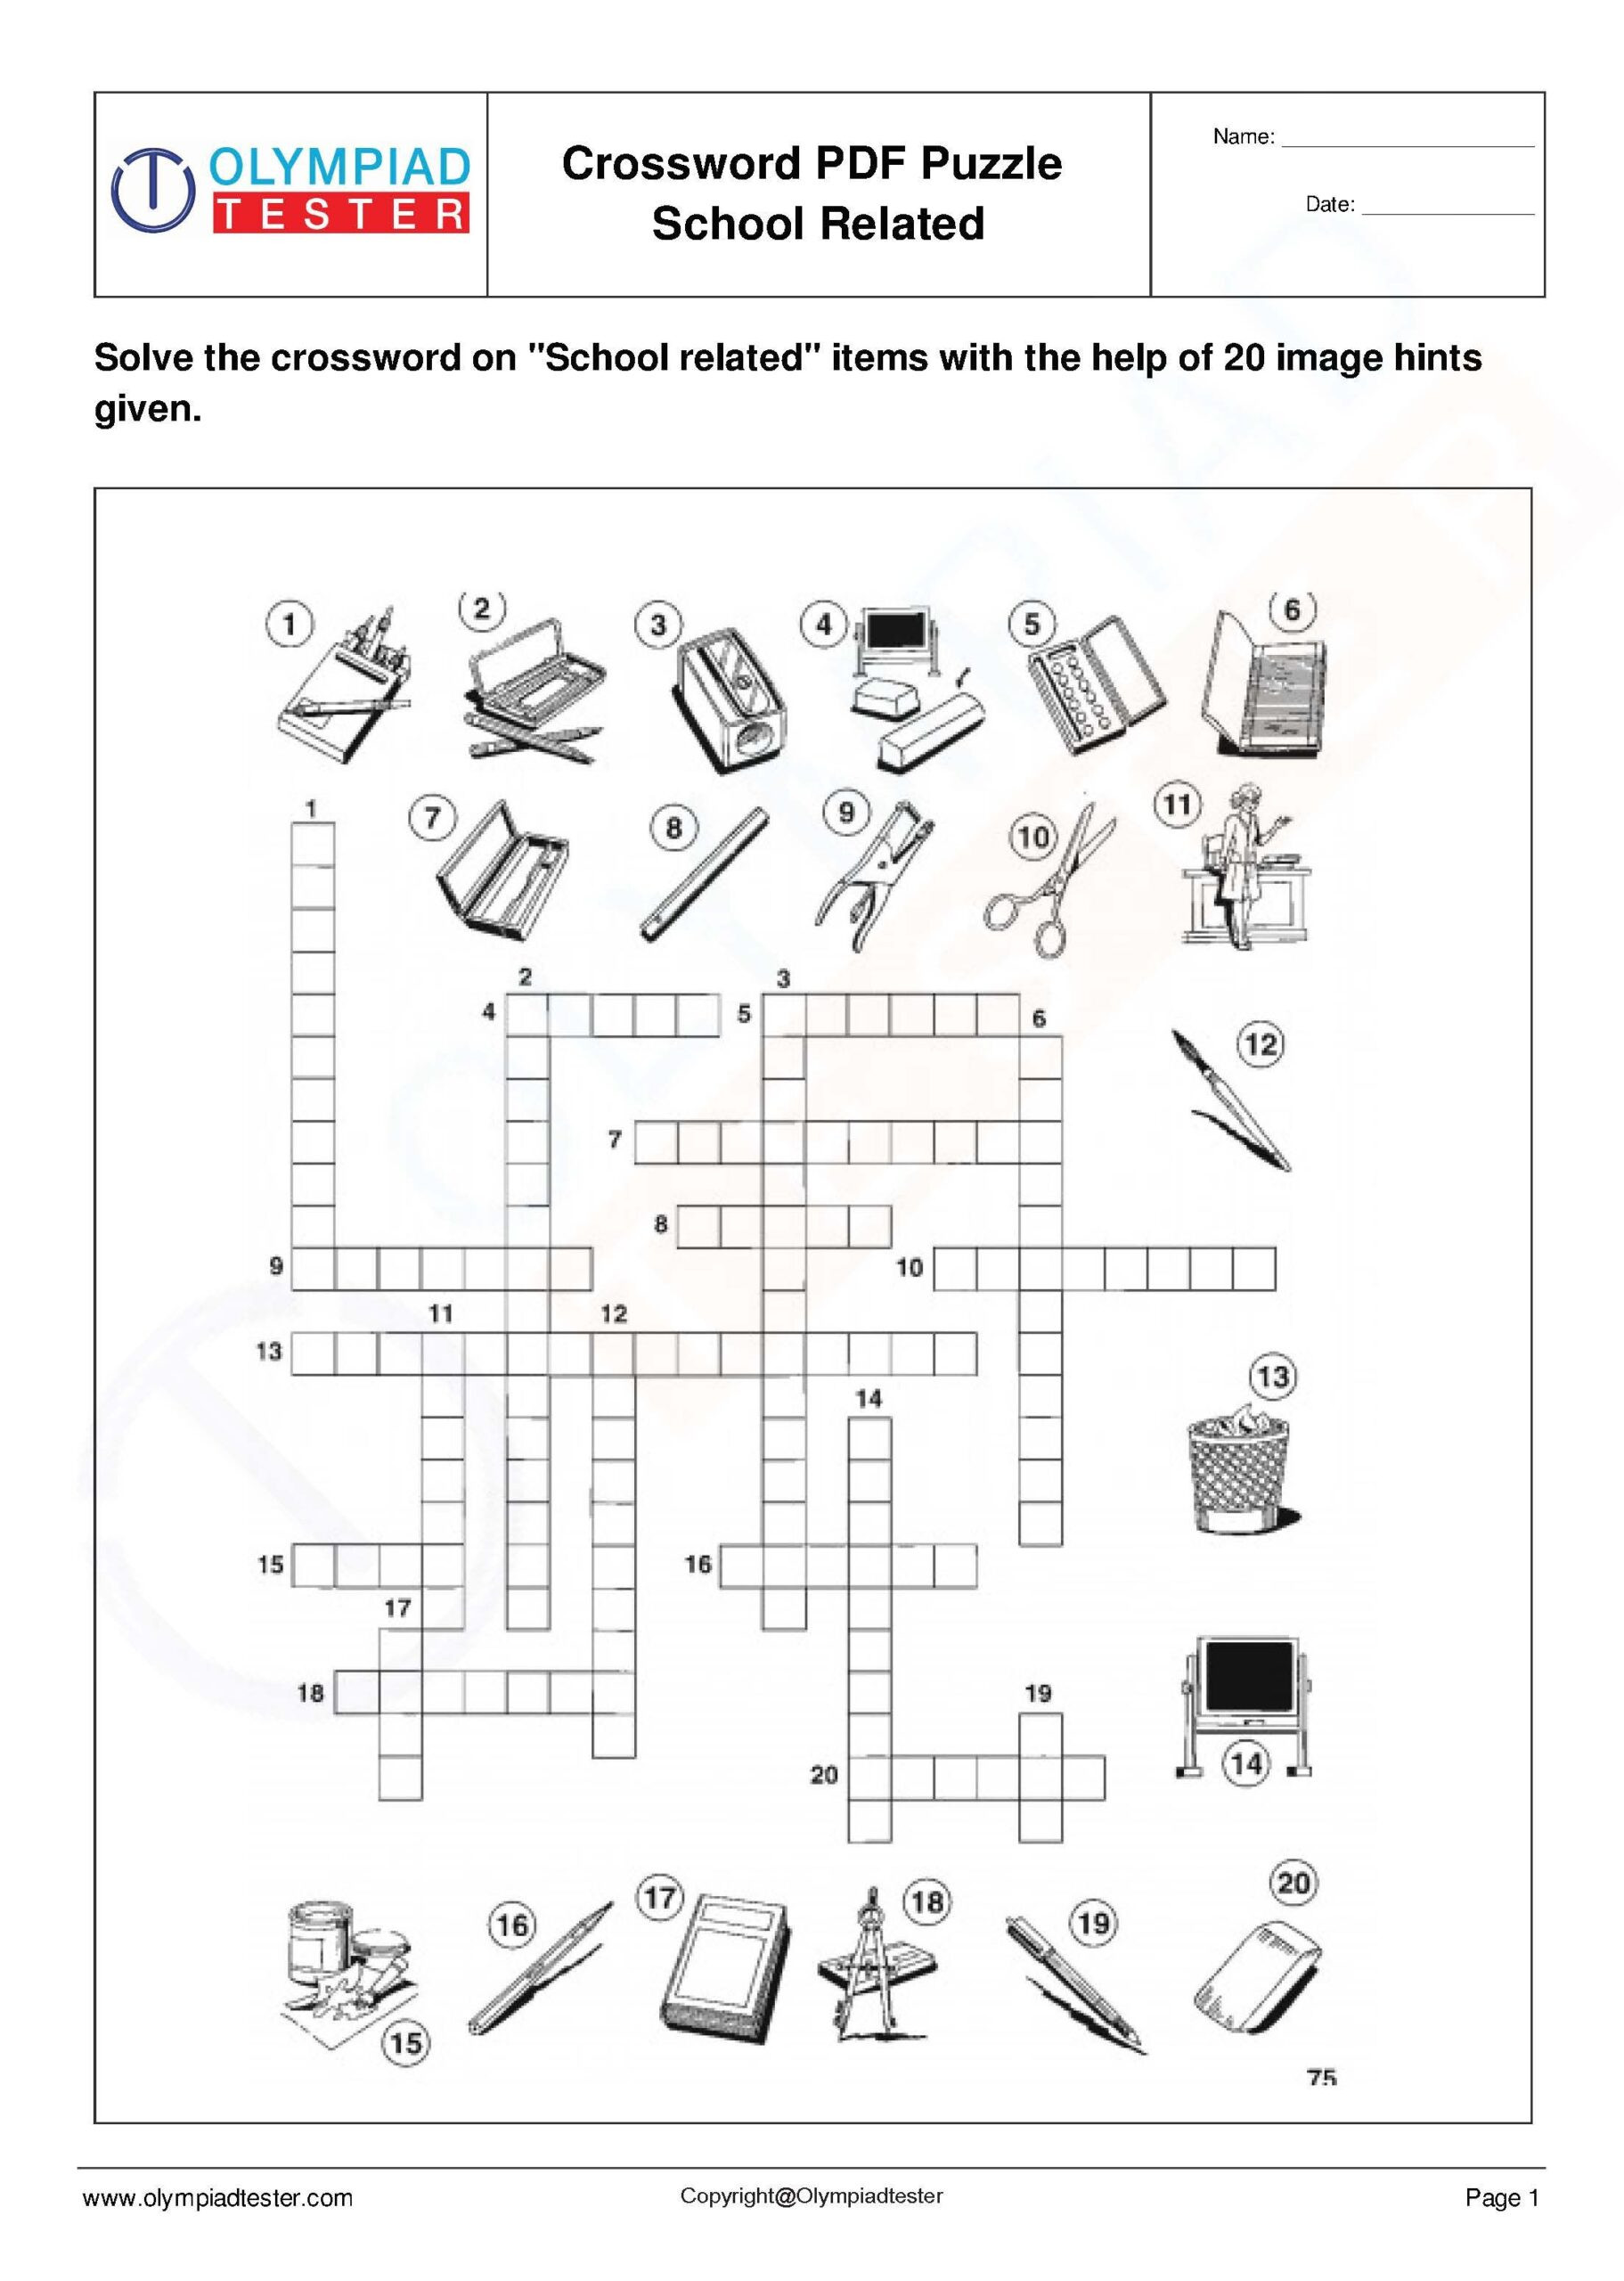 6th Grade Math Crossword Puzzles Space Science Worksheet Crossword Puzzles Printable